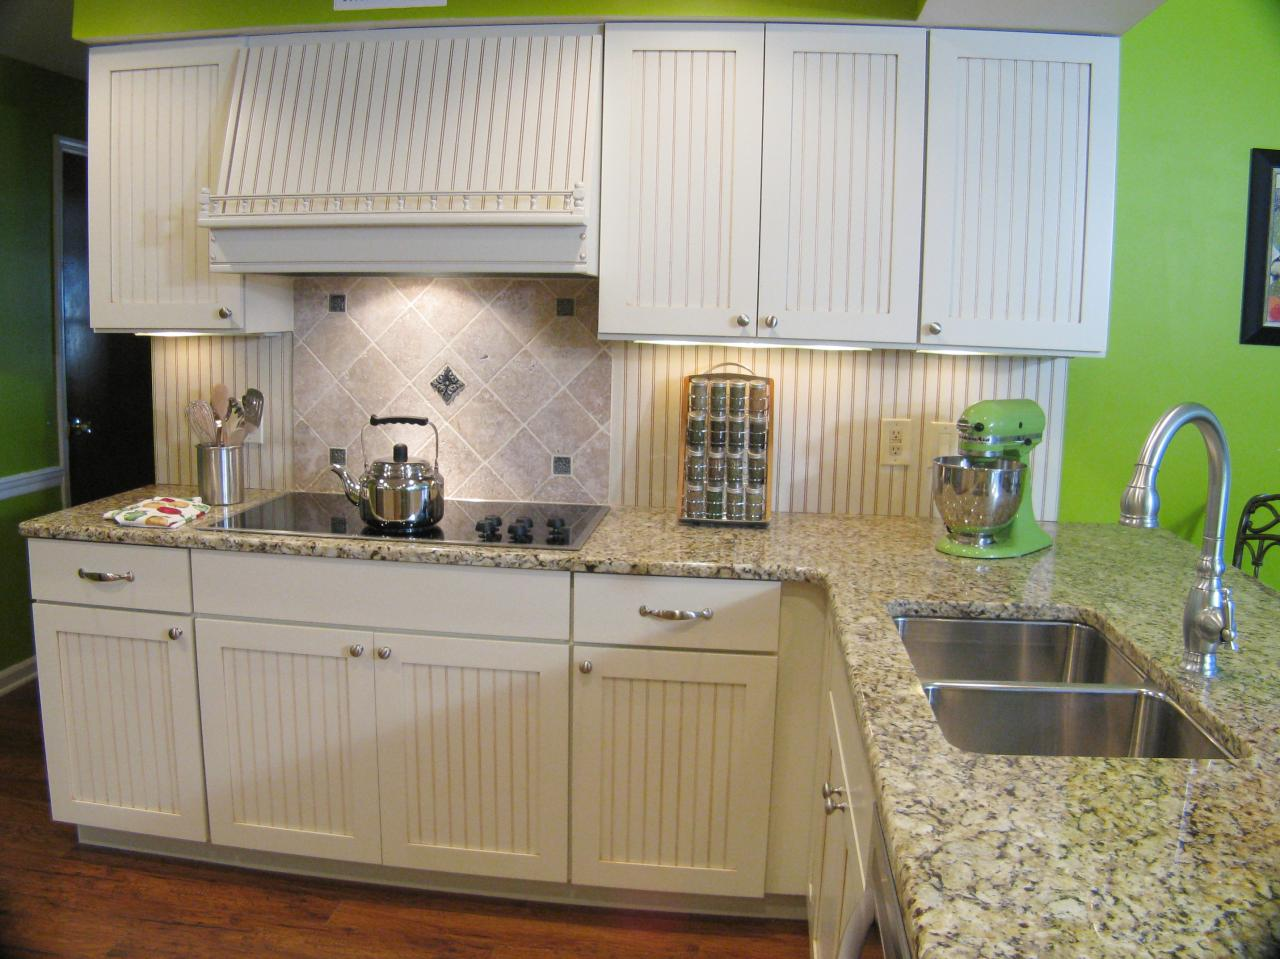 Beadboard Cabinets in a Farmhouse Style Kitchen